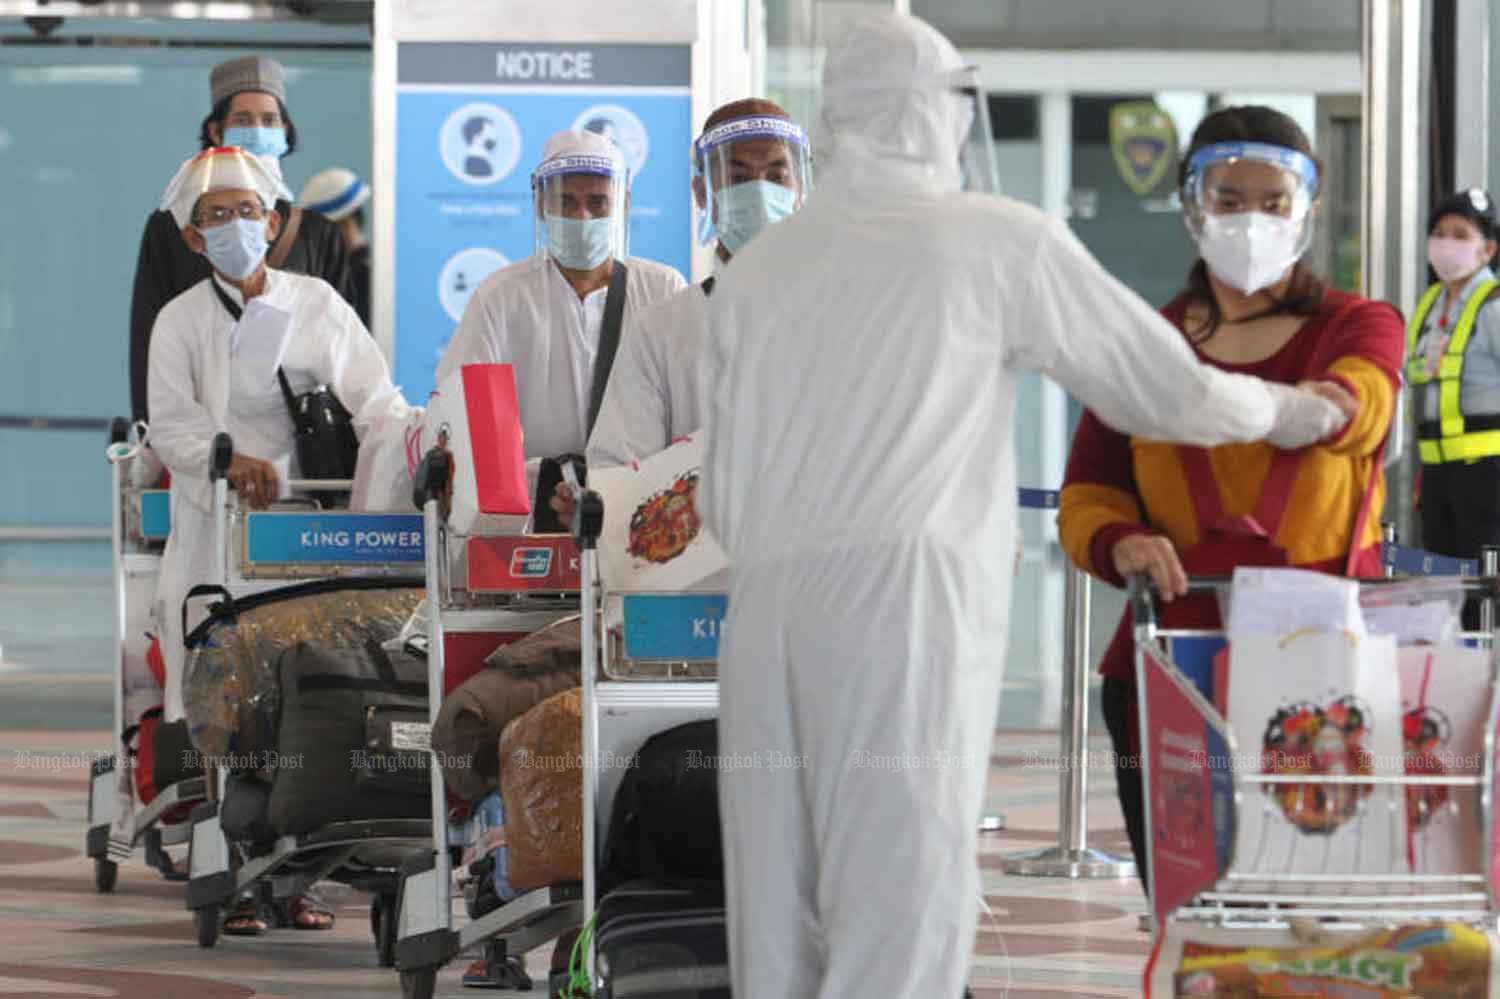 Disease control staff examine returnees at Suvarnabhumi airport. The government reported 15 new Covid-19 cases, all returnees, on Wednesday. (Bangkok Post file photo)